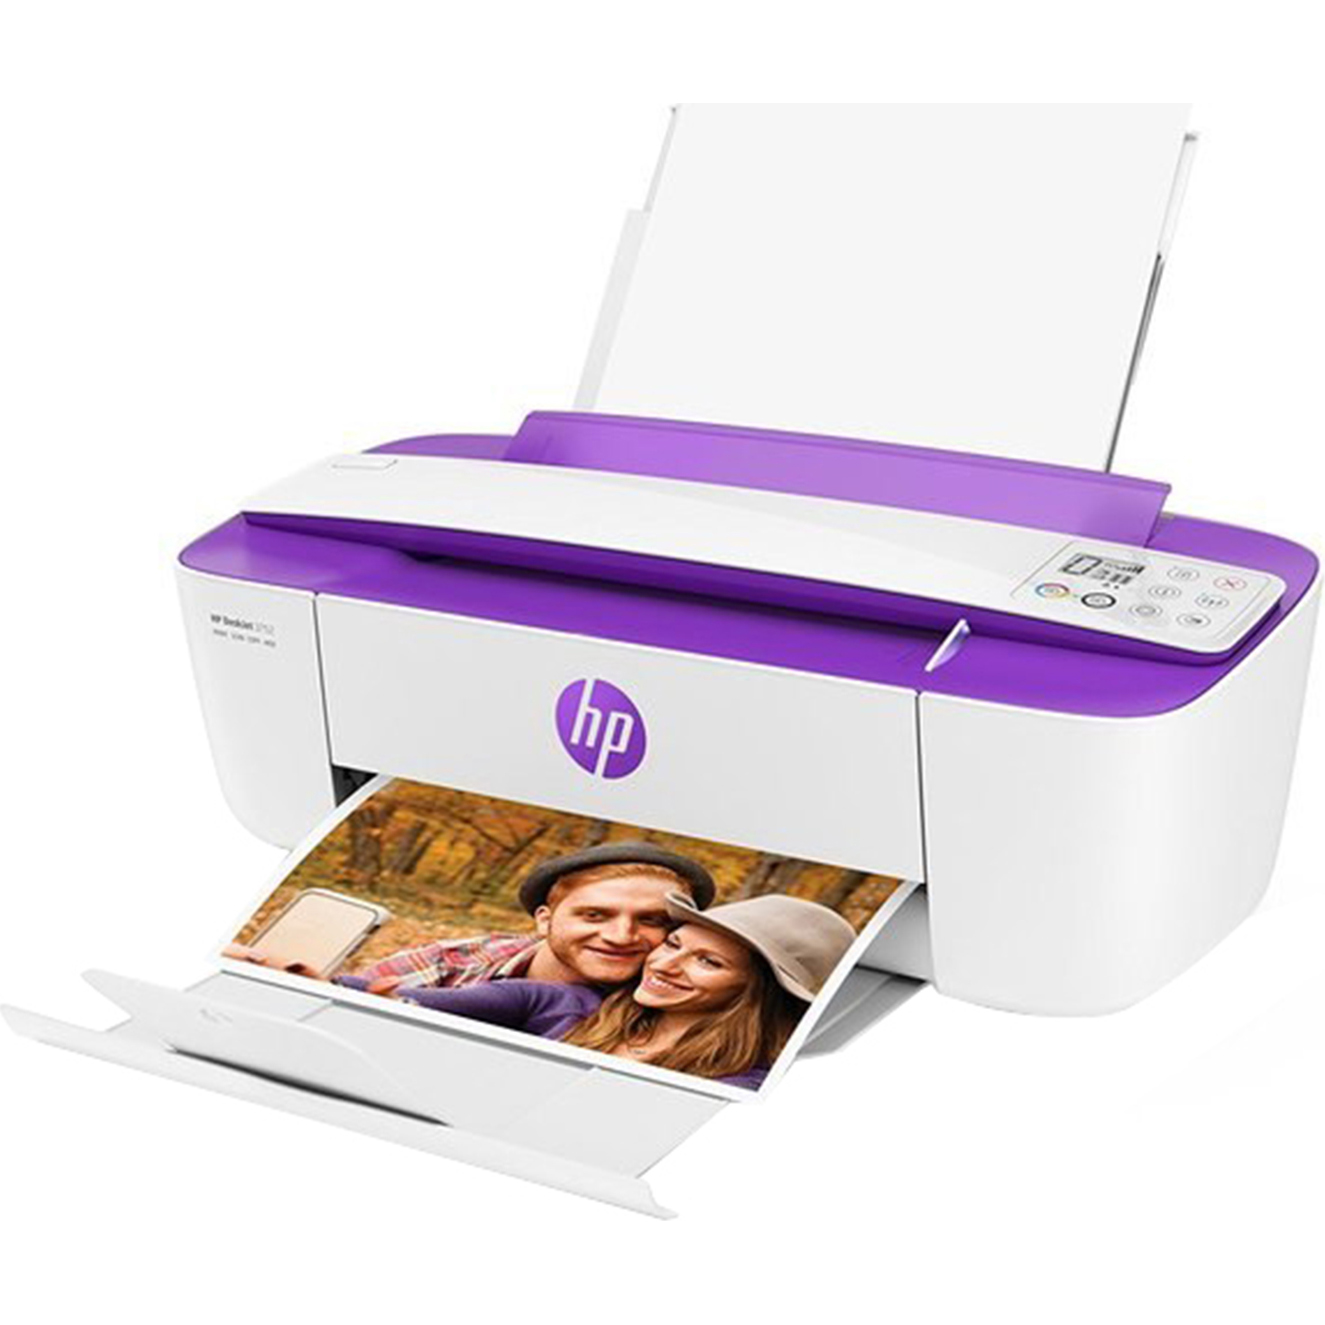 Refurbished HP 3755 All-in-One Color Ink Jet Printer, Purple